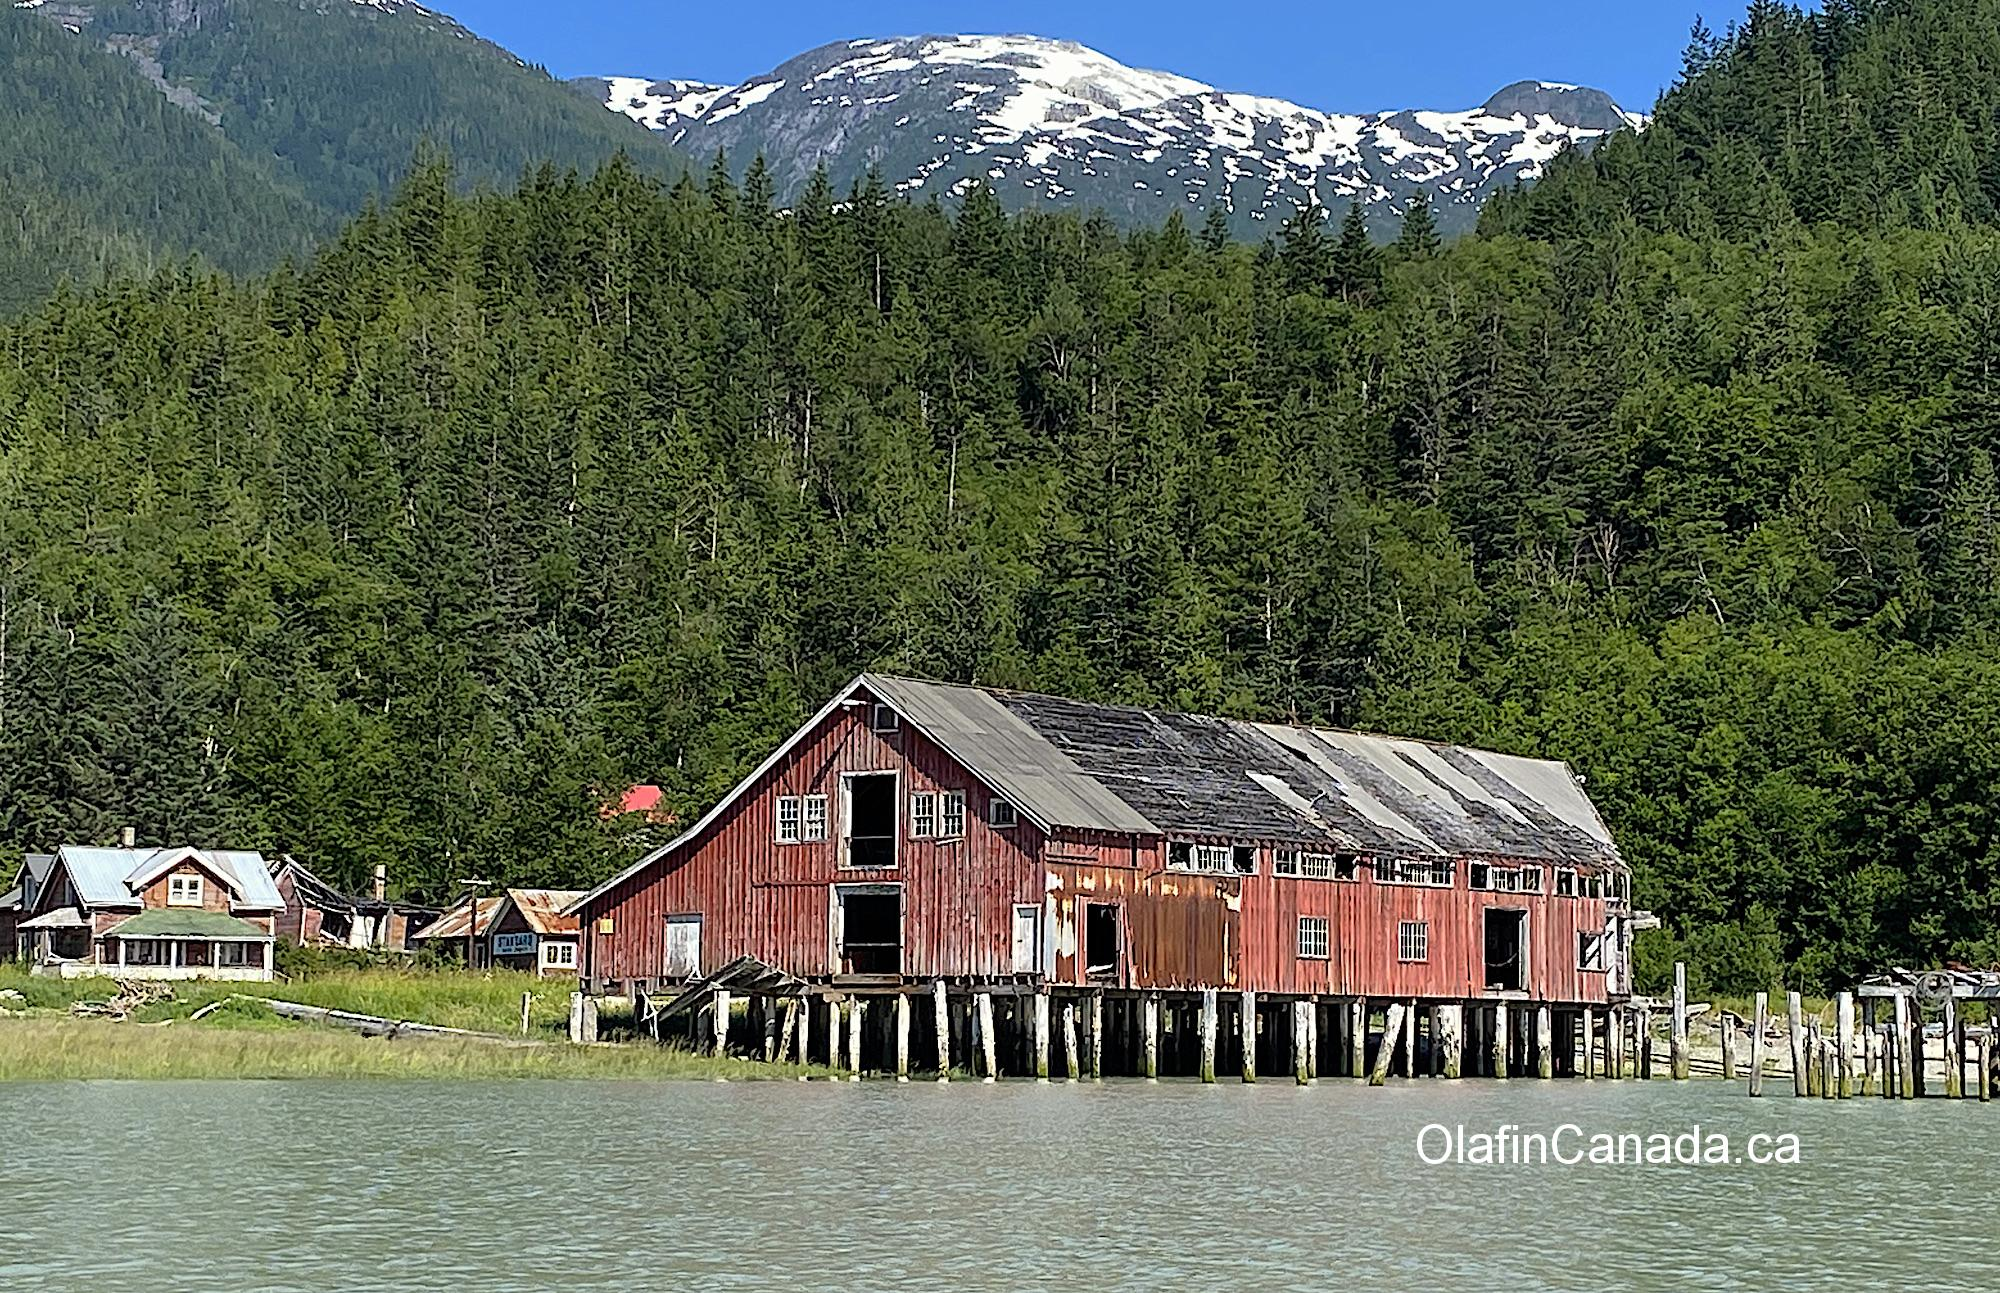 The Tallheo Cannery with the snow-capped mountains in the background #olafincanada #britishcolumbia #discoverbc #abandonedbc #tallheocannery #bellacoola